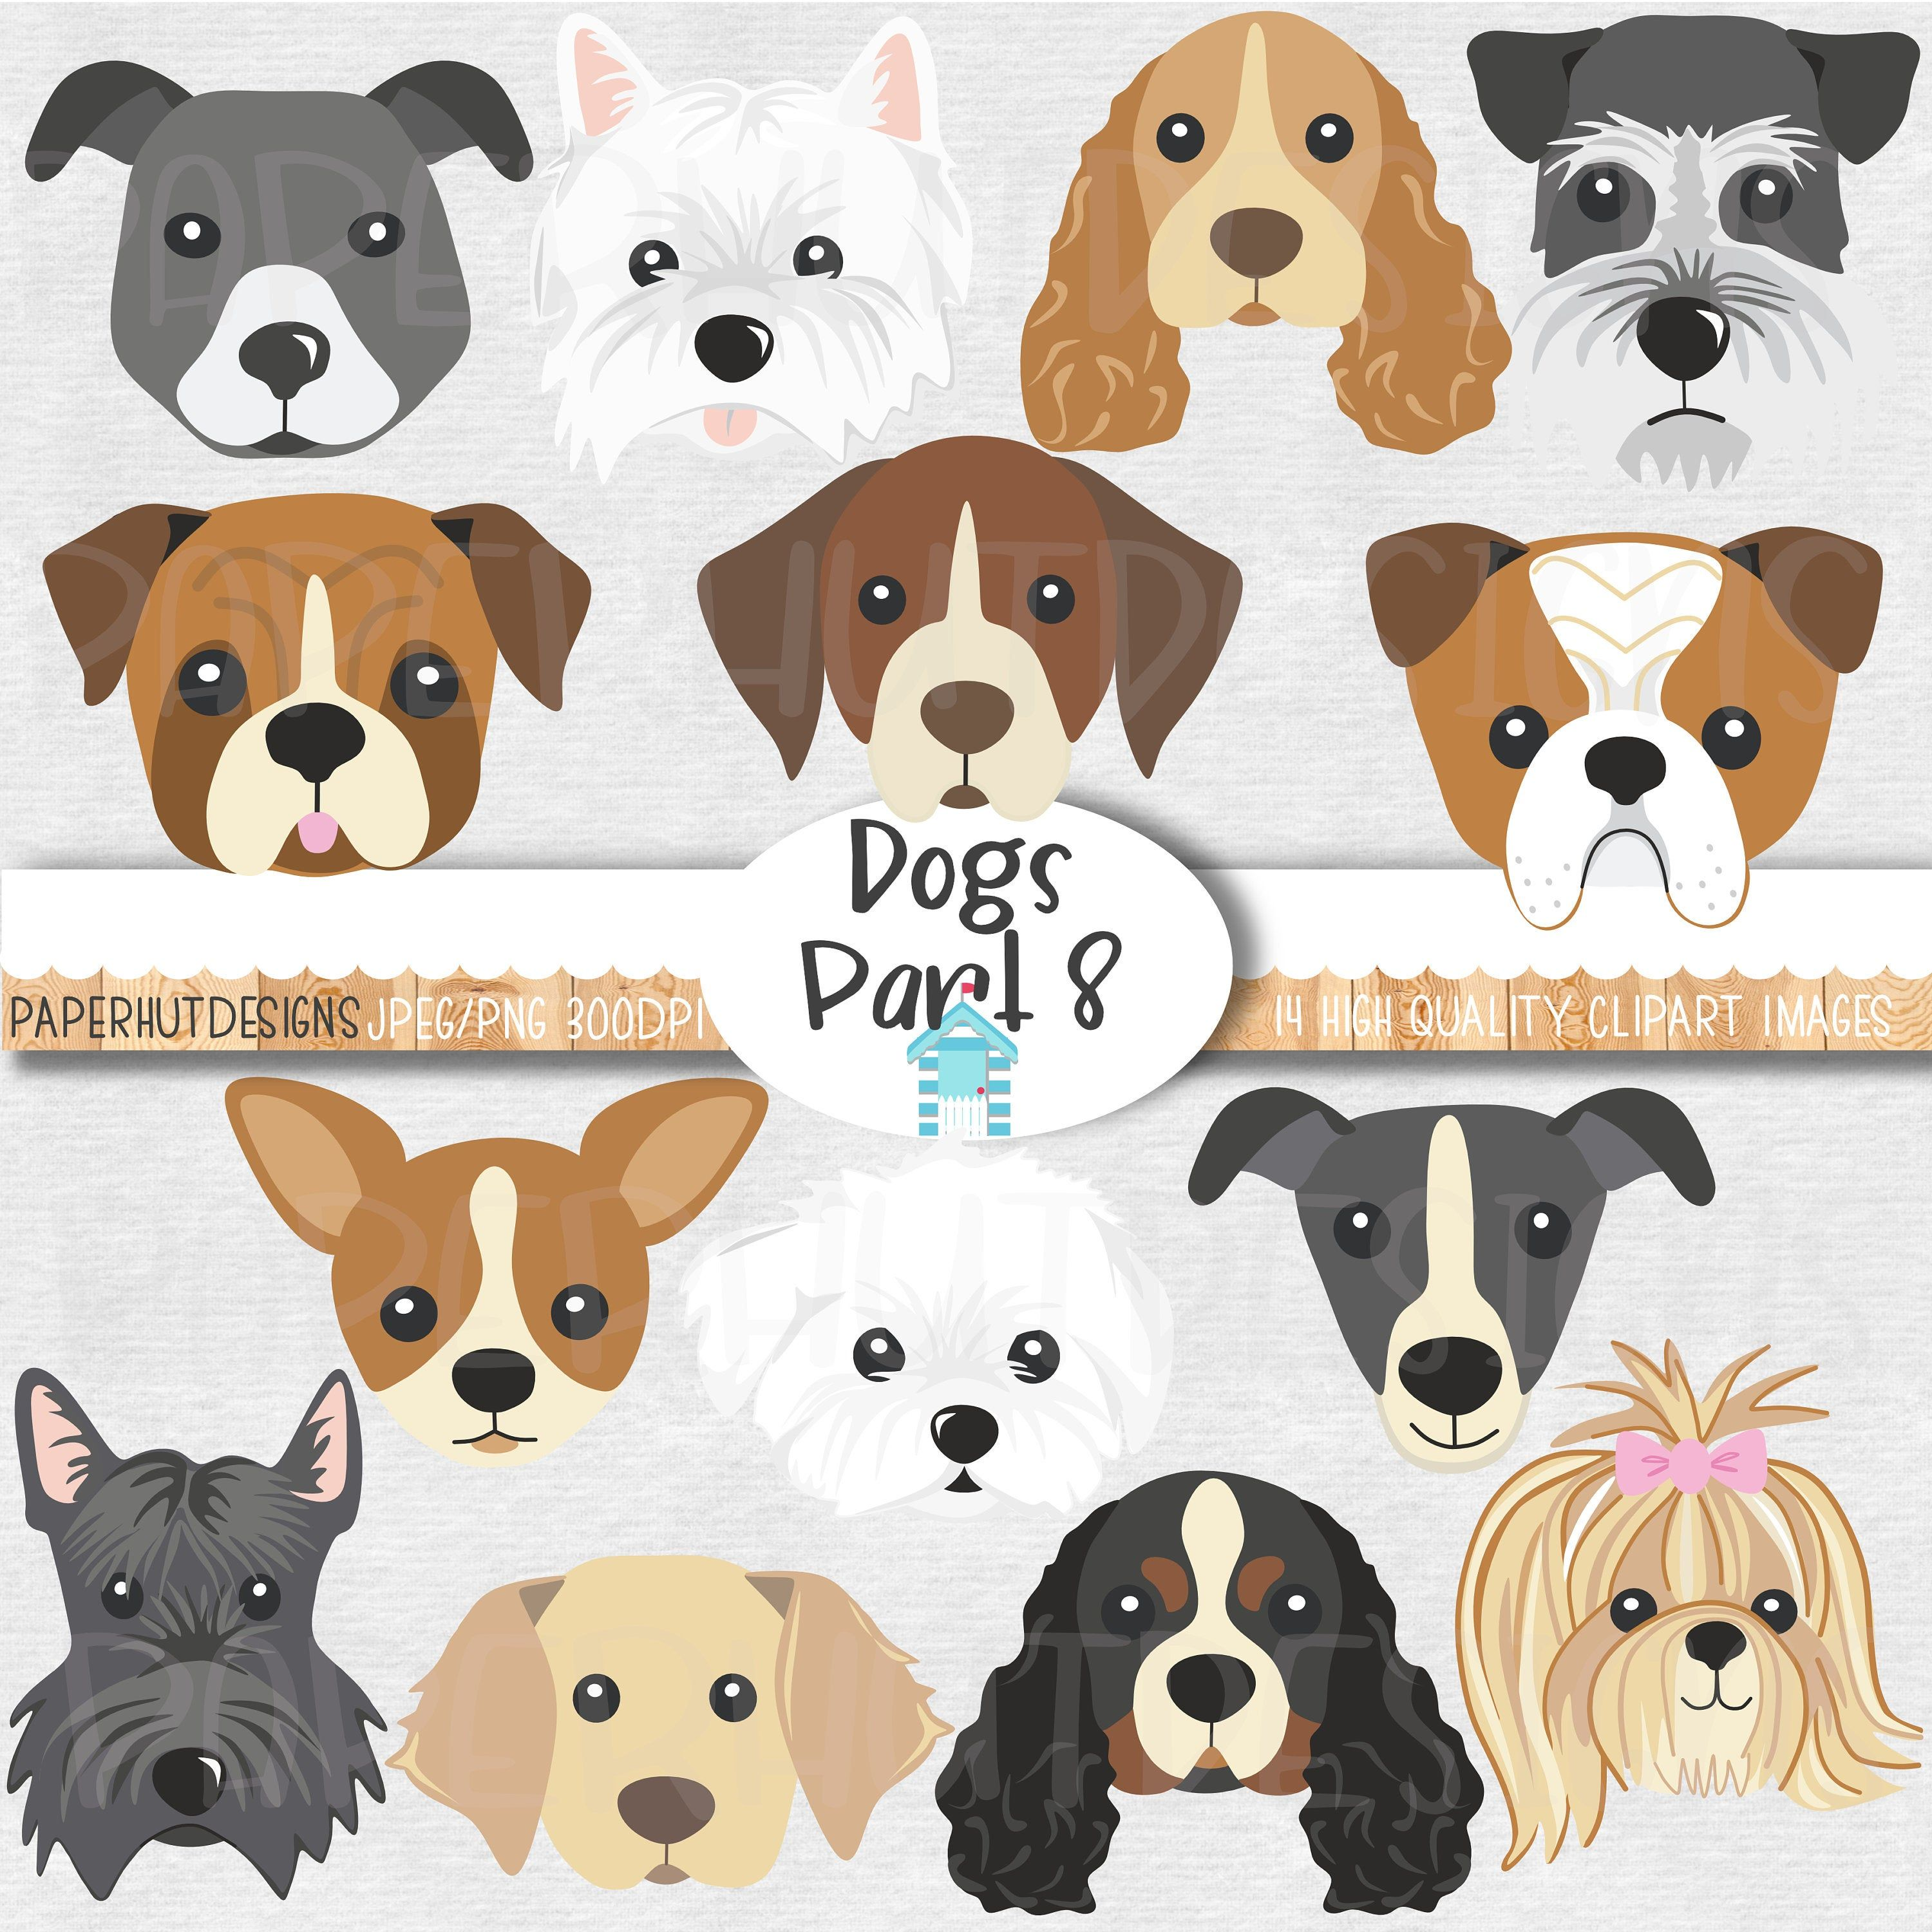 Dog Faces Clipart Cute Puppy Faces Clipart Dog Clip Art Puppy Etsy Dog Clip Art Clip Art Puppy Clipart